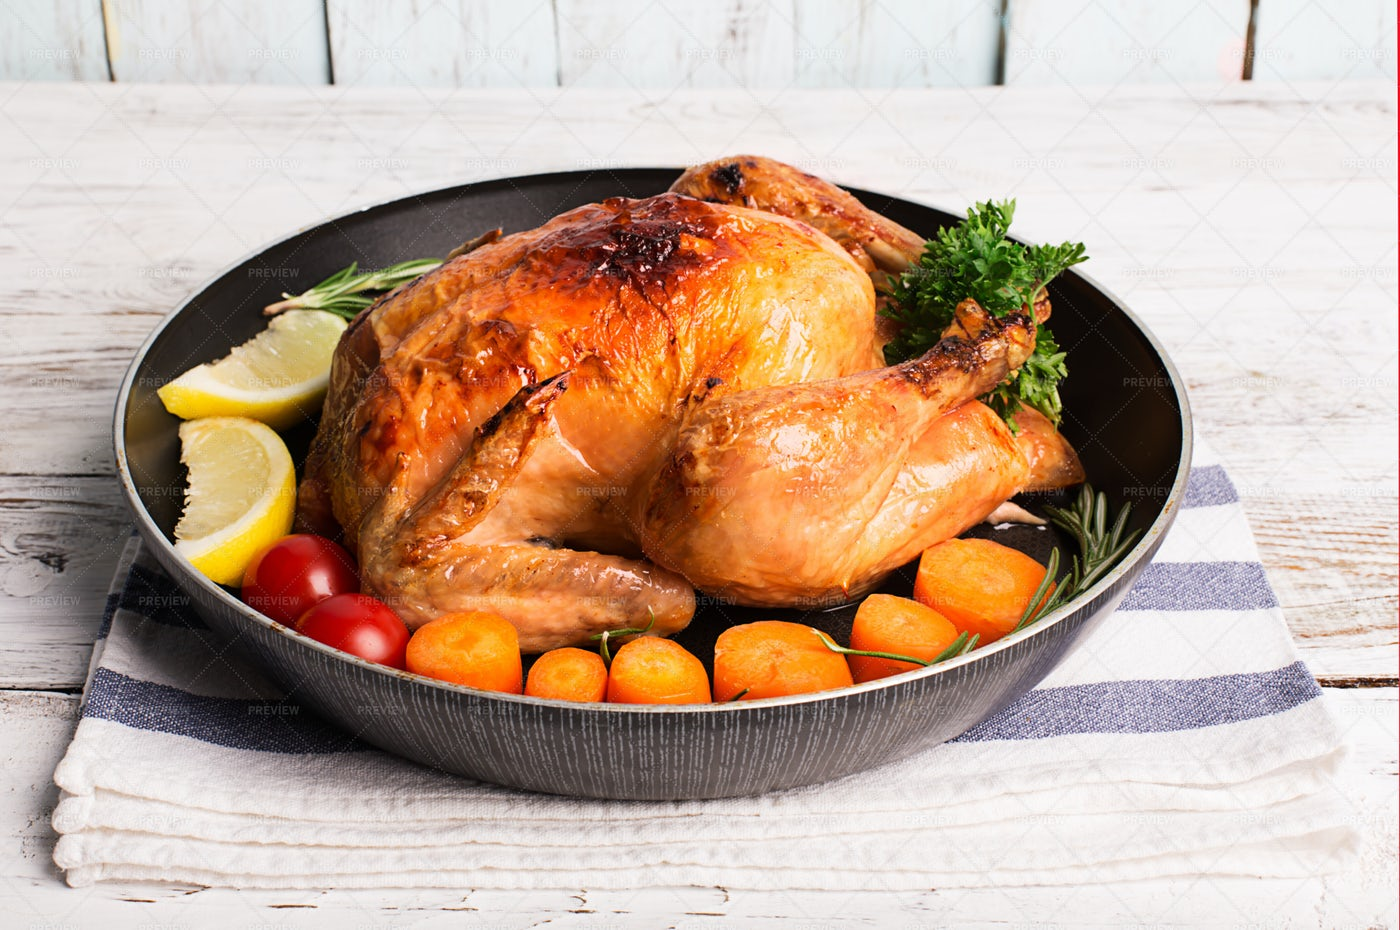 Roasted Chicken And Vegetables: Stock Photos